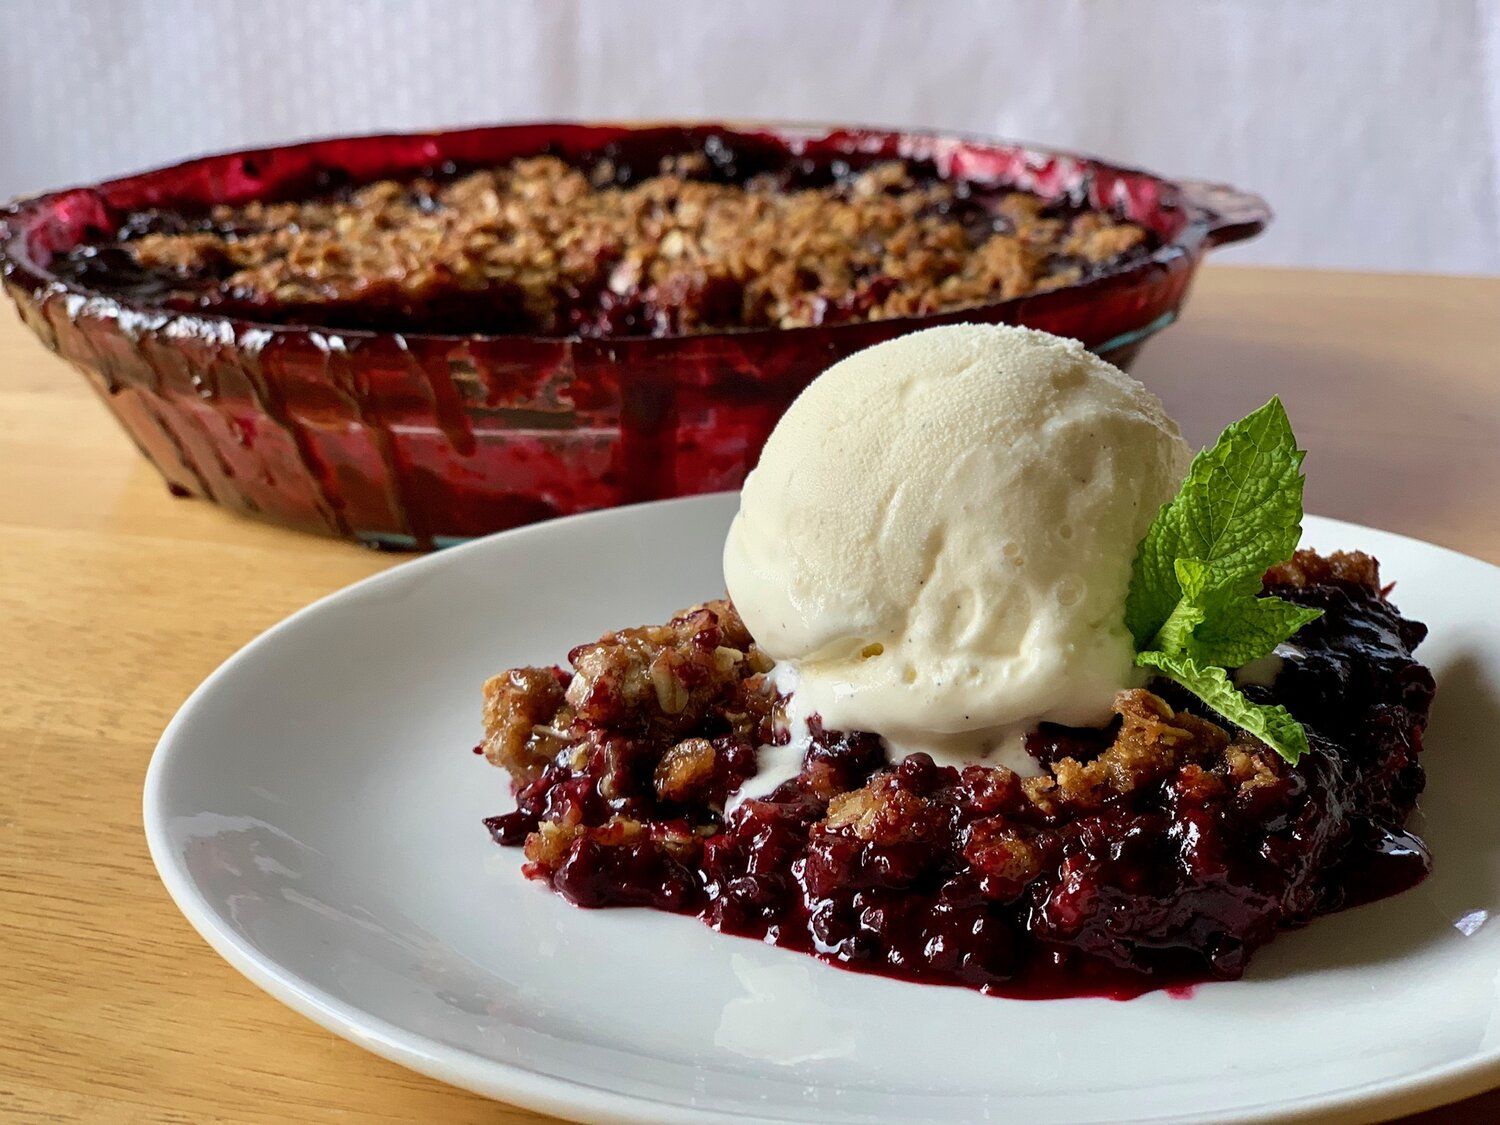 8. Serve warm or allow to cool to room temperature, topped with a scoop of vanilla bean ice cream. -